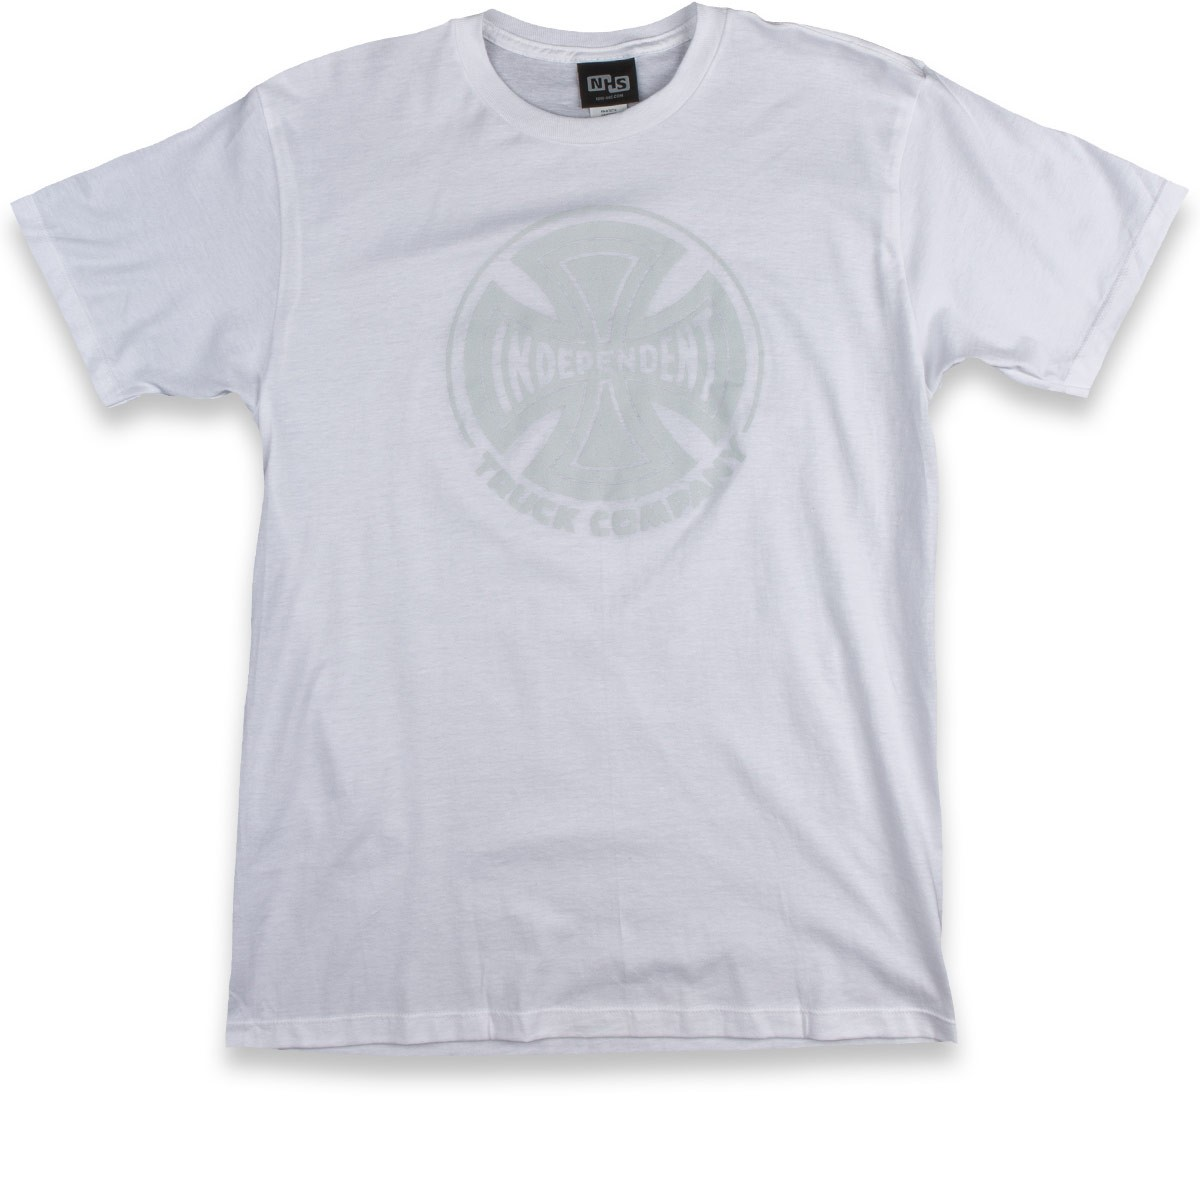 Independent Fade Cross T-Shirt - White